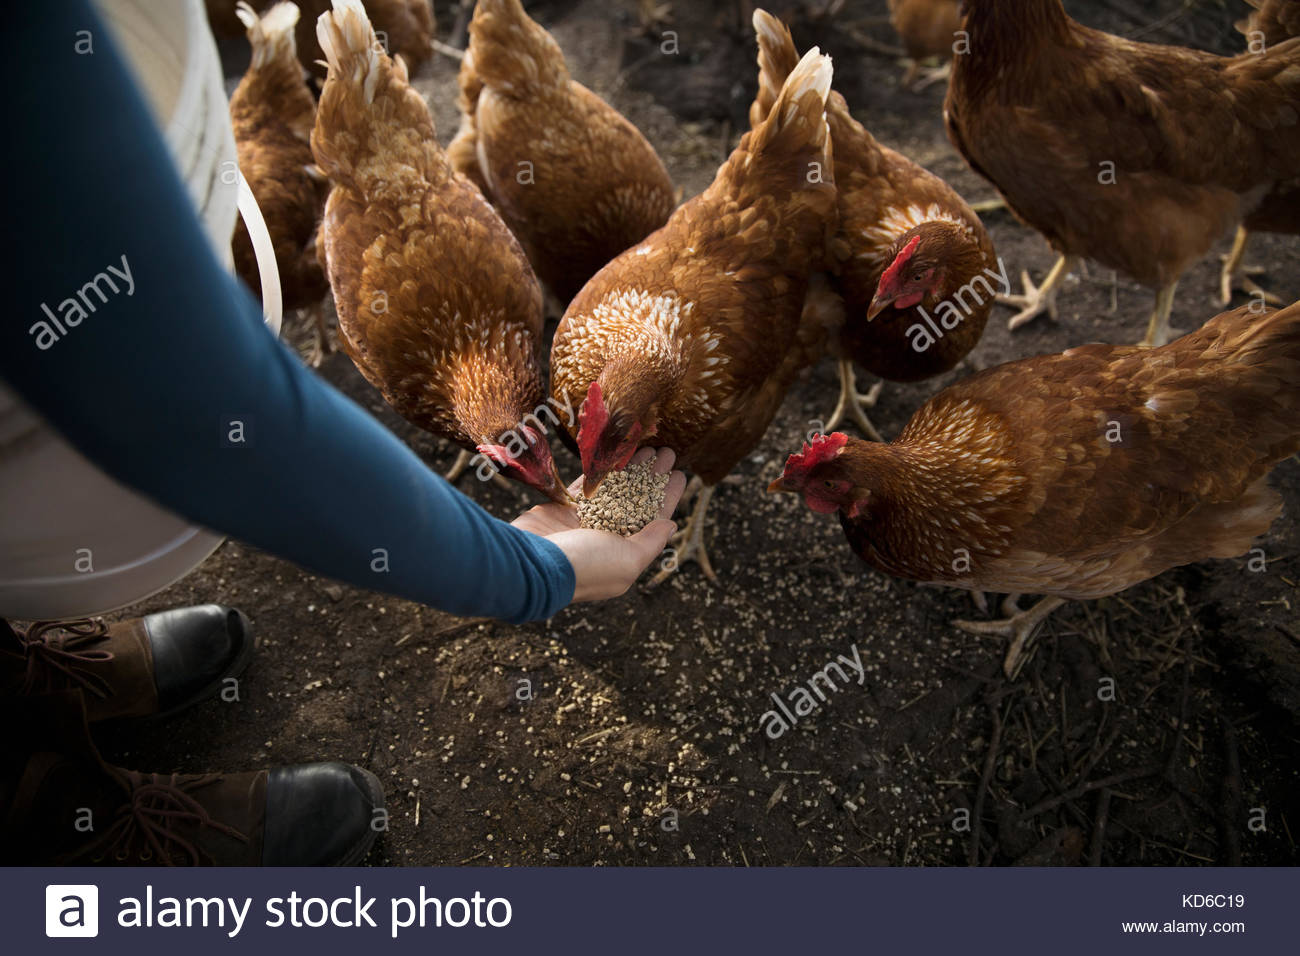 Female farmer feeding chickens from hand in chicken coop - Stock Image